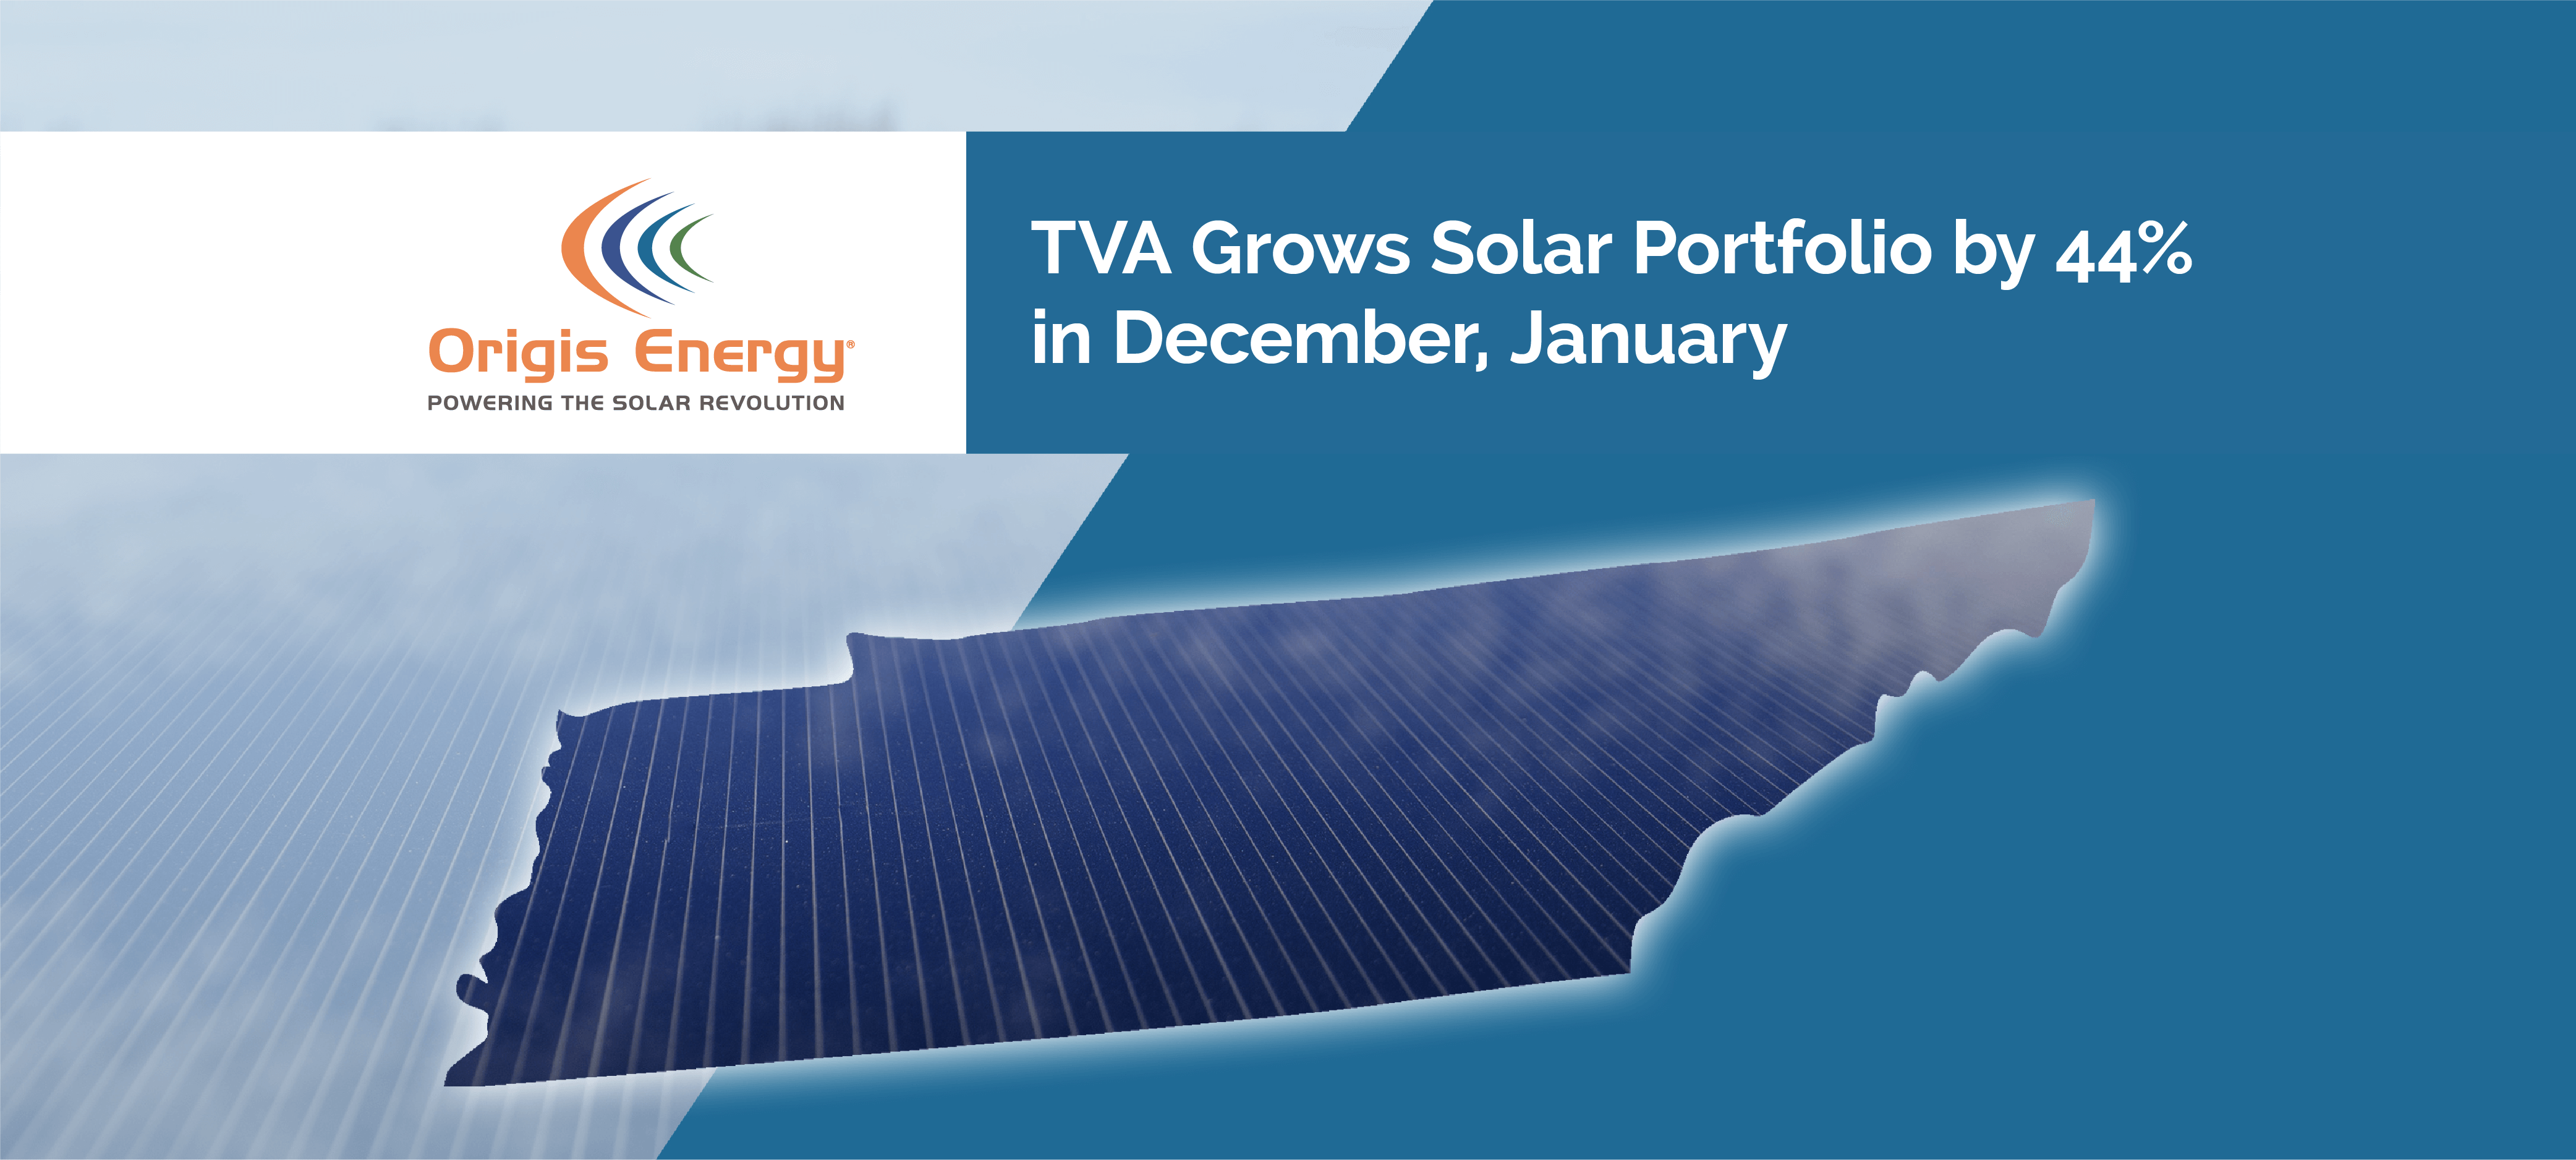 TVA Grows Solar Portfolio by 44% in December, January